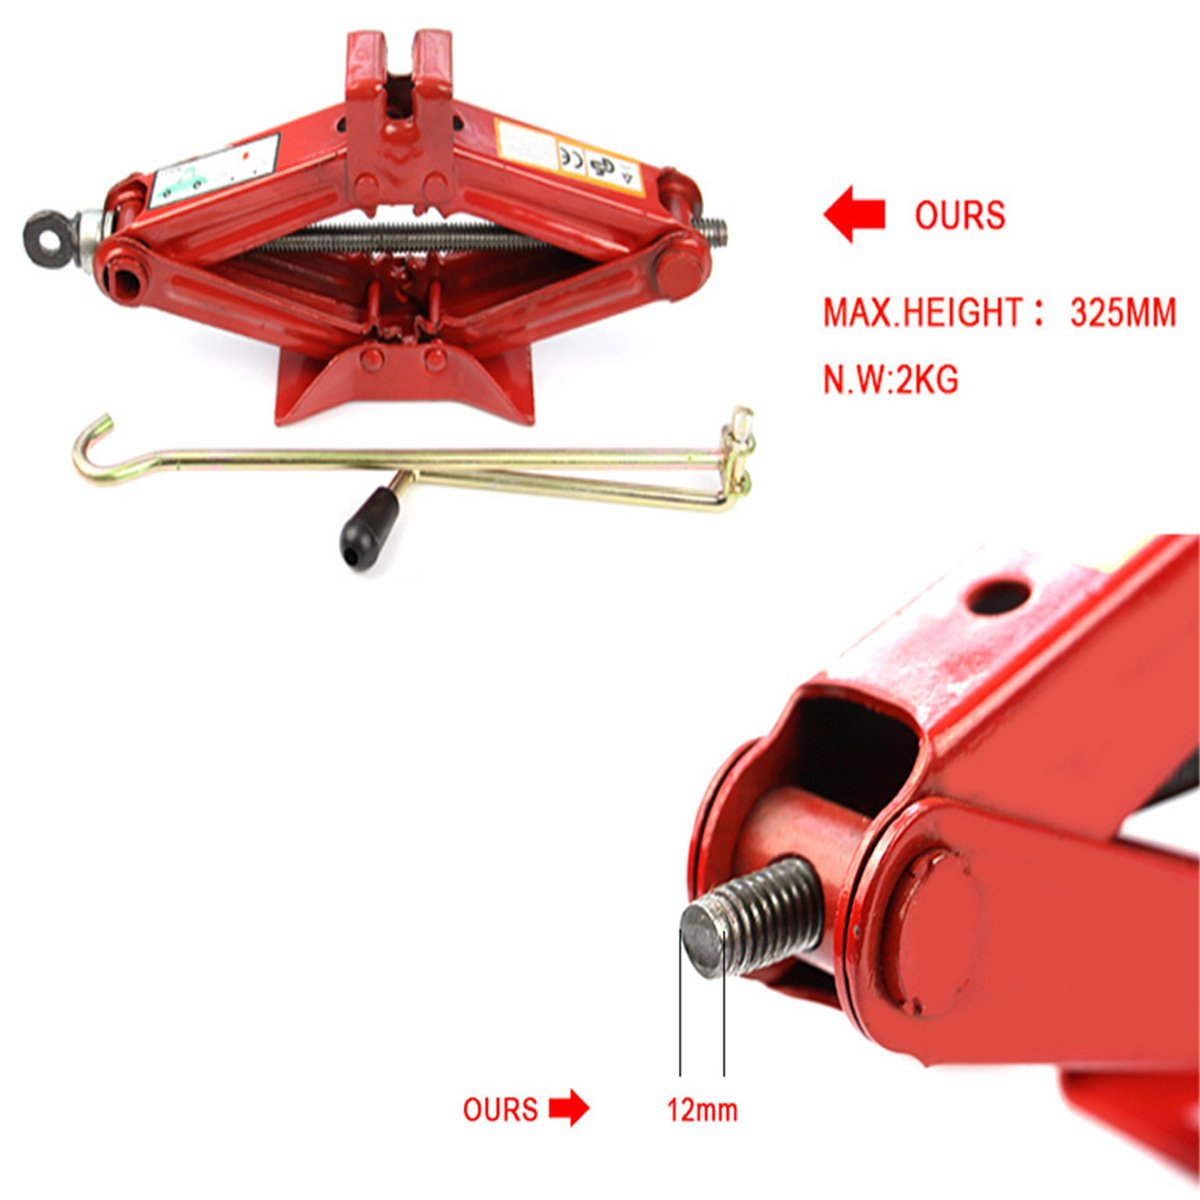 Okeler 1 Ton Scissor Jack for RV Car Motorcycle Lifting Home Emergency, Red by Okeler (Image #4)